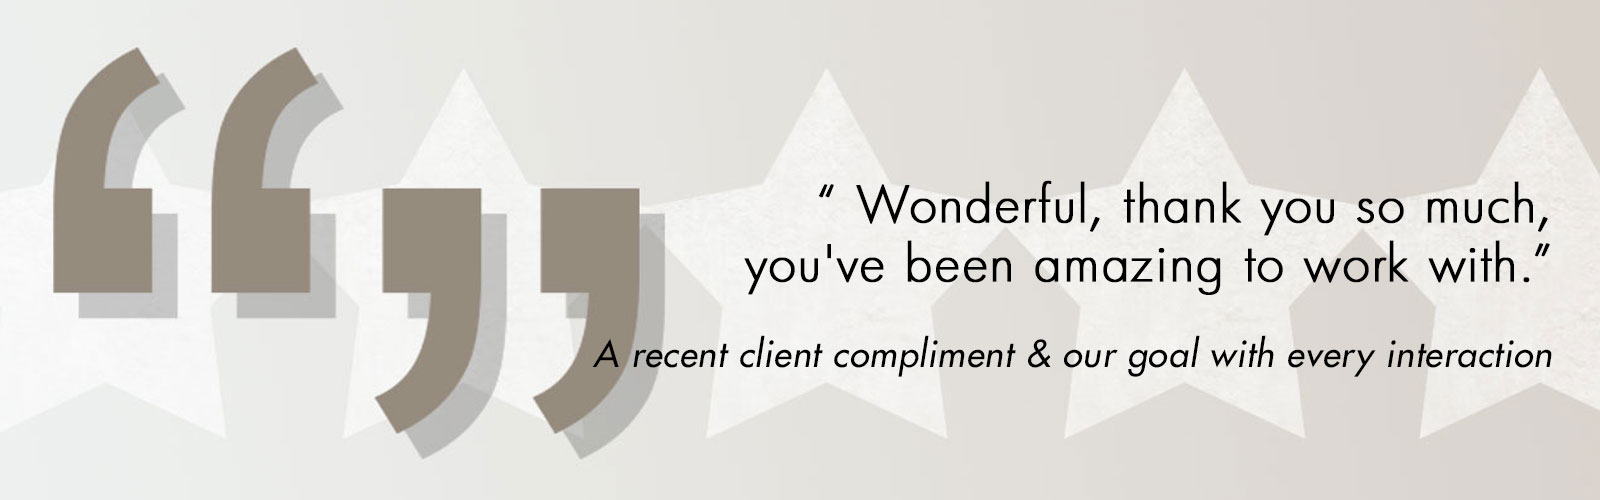 Client rave review